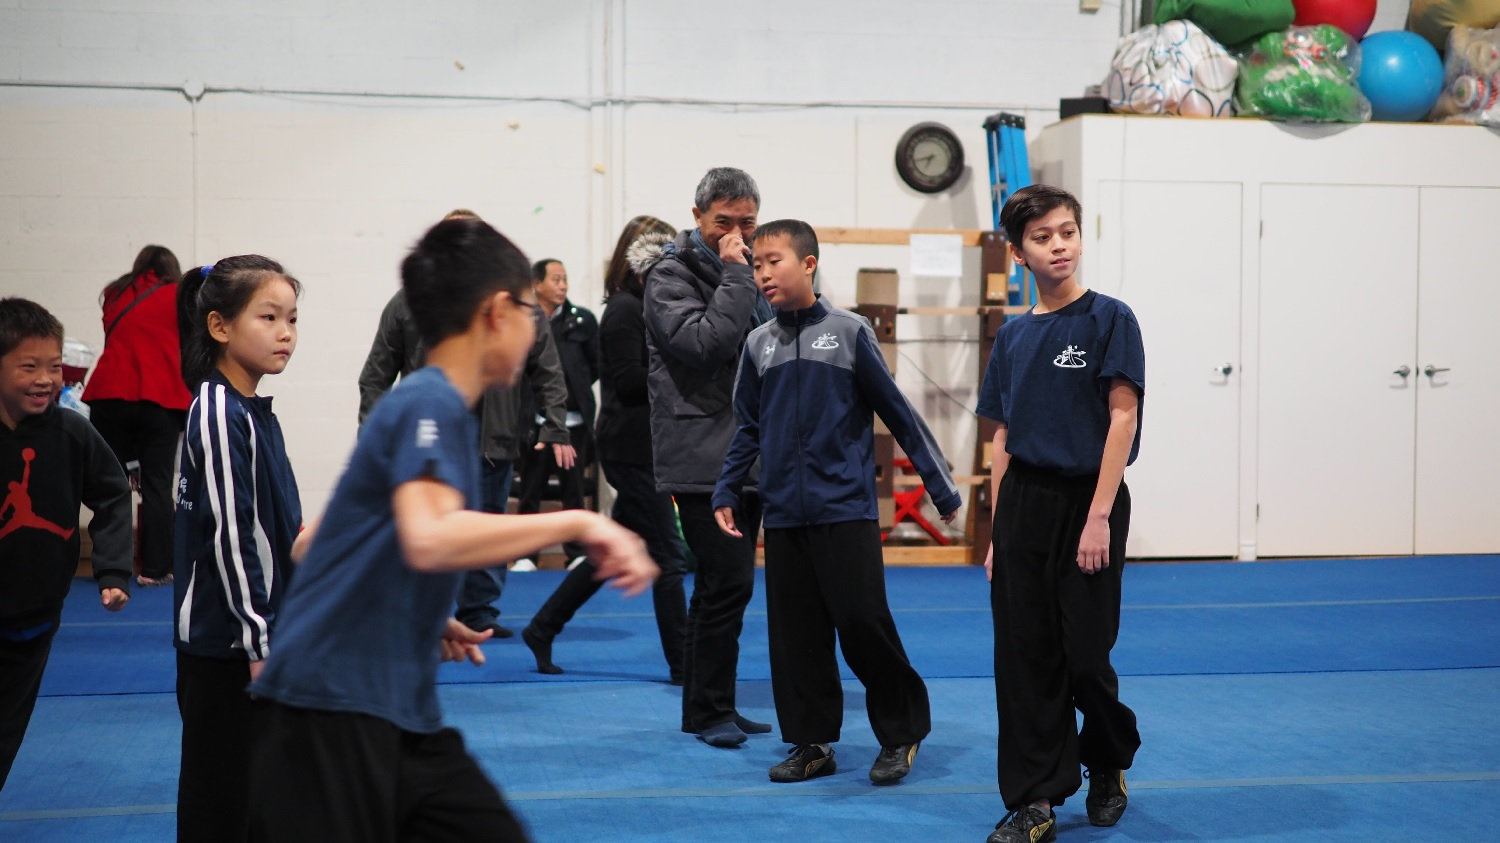 wayland-li-wushu-canada-ontario-toronto-classes-taolu-holiday-party-2017-12.jpg